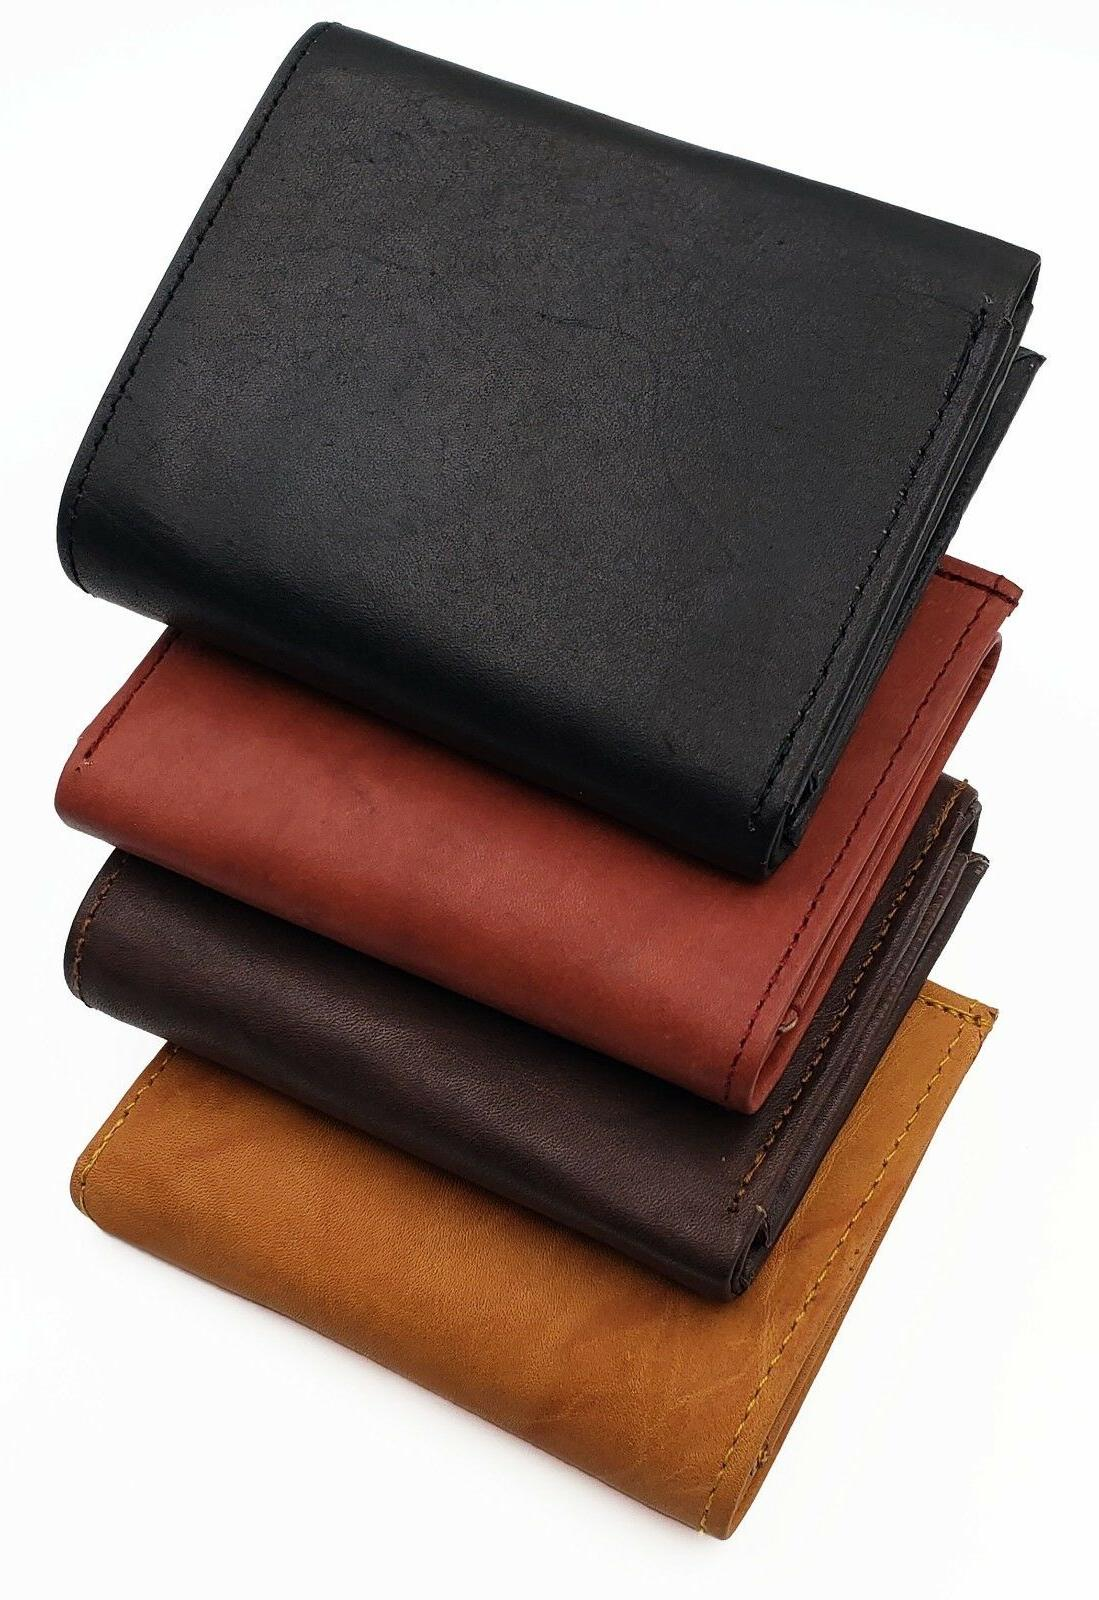 AG RFID Cowhide Leather Removable